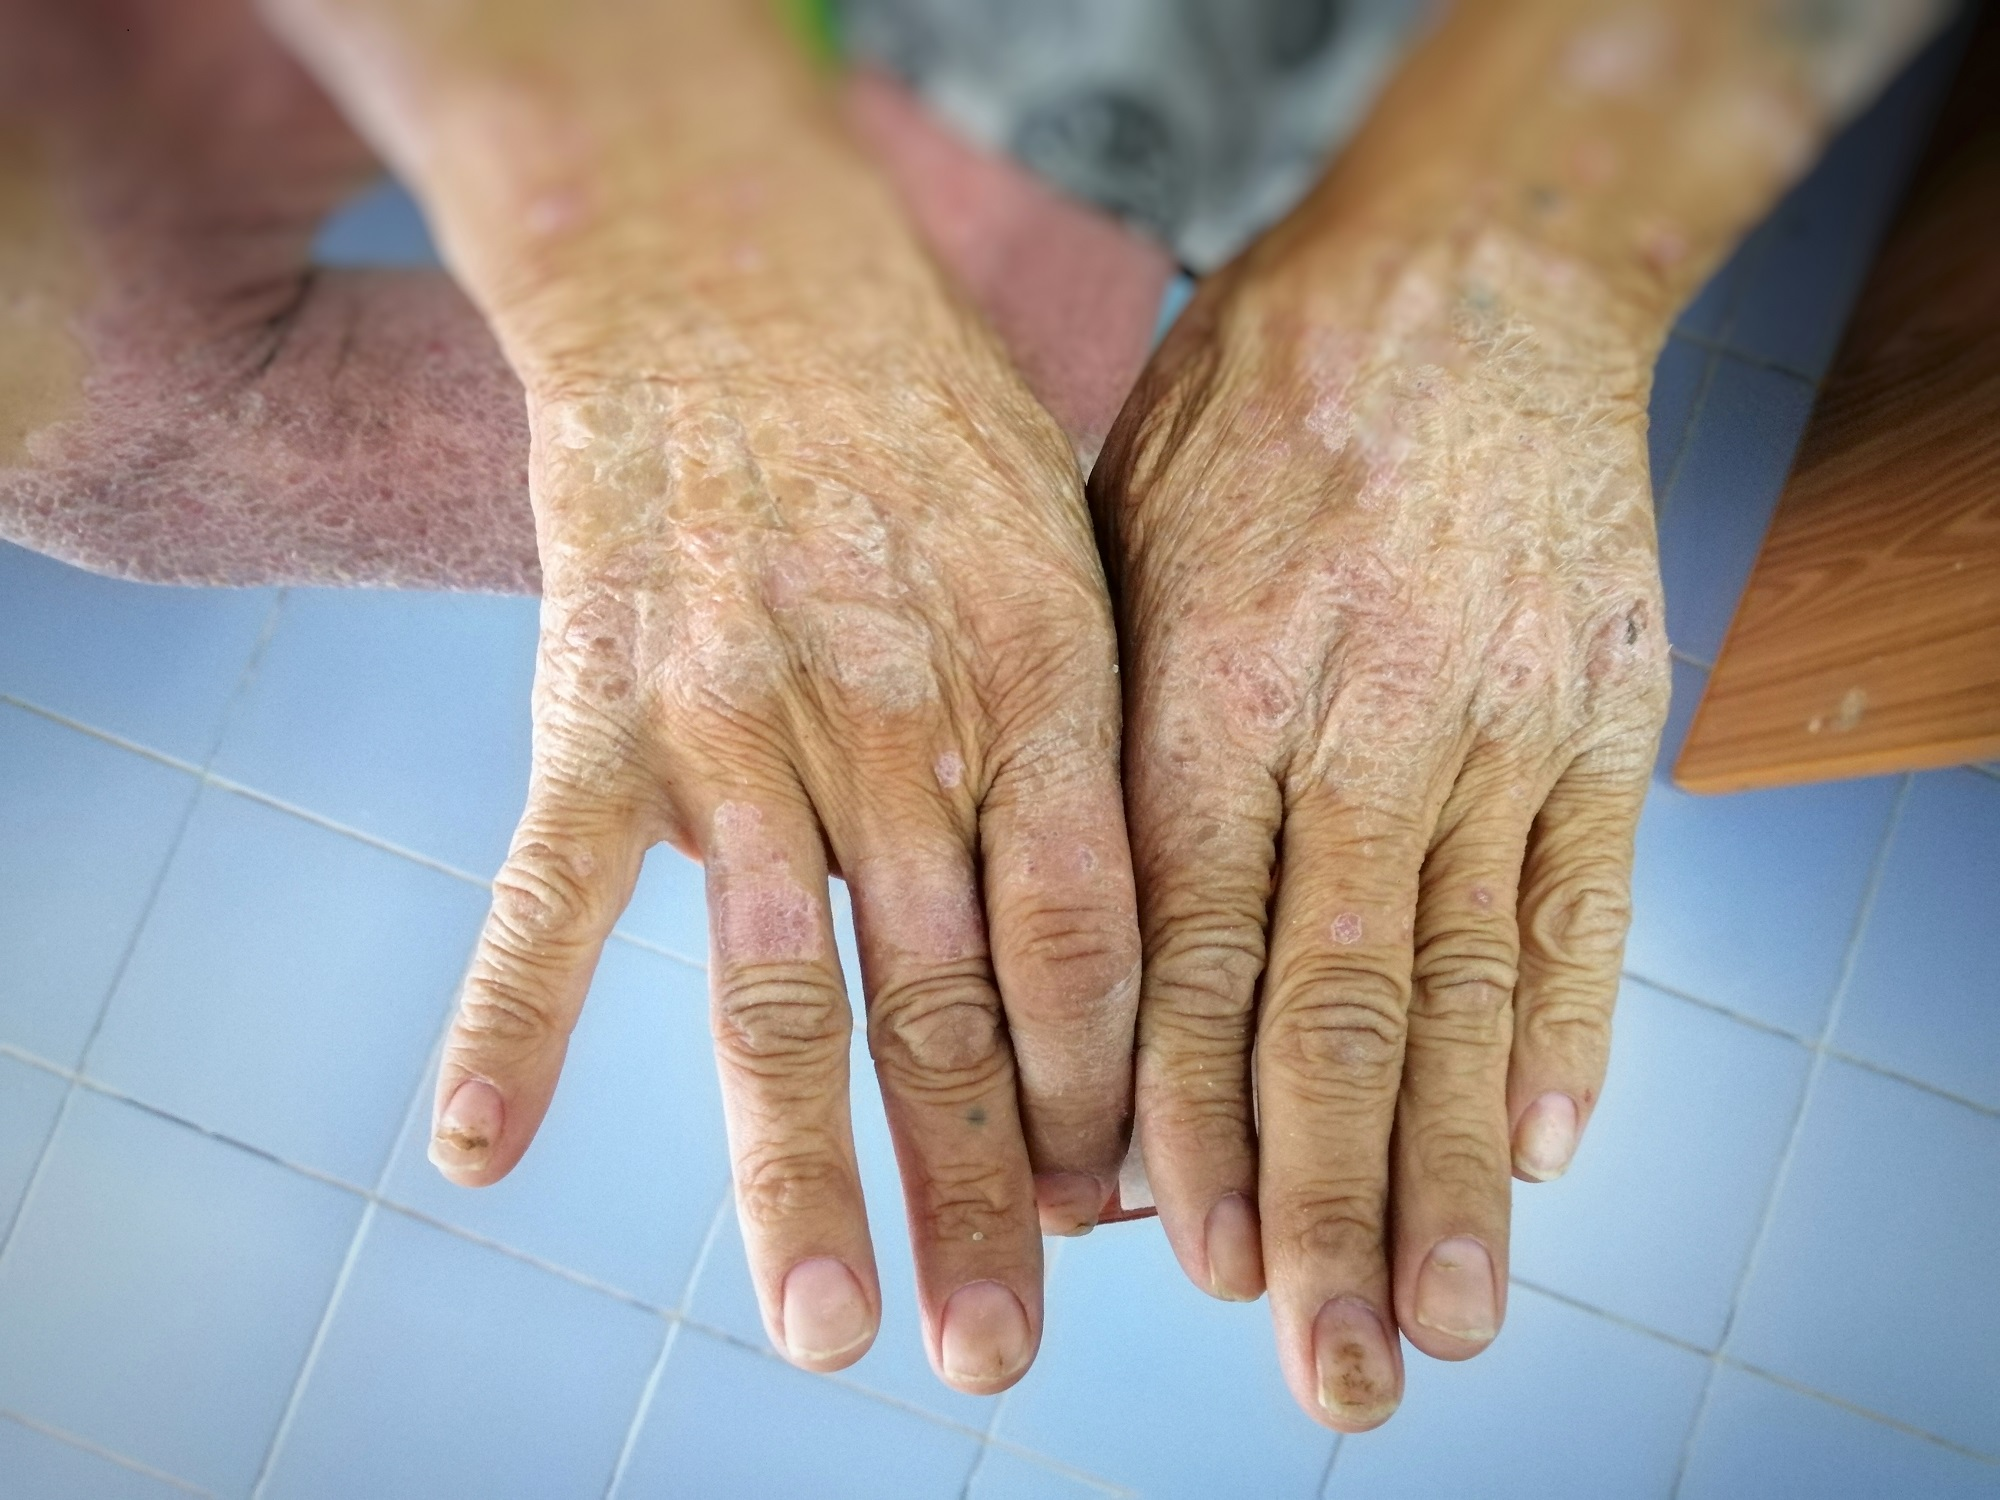 What You Need To Know About Lupus And Scleroderma